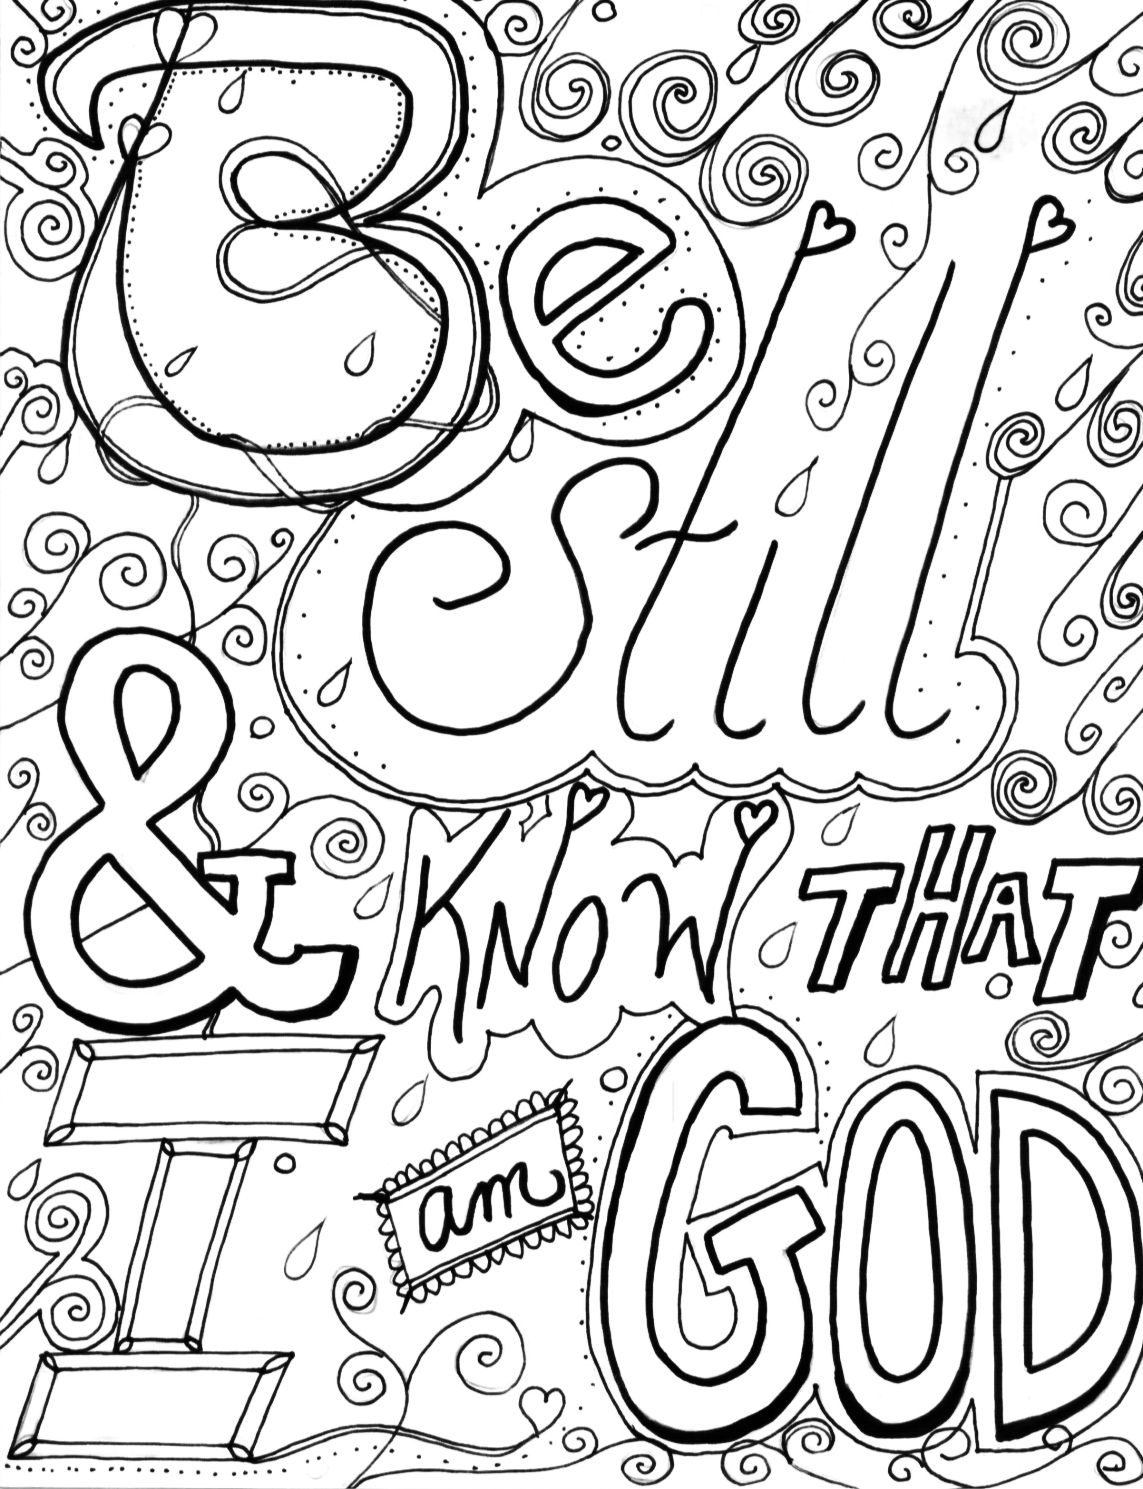 Be Still And Know That I Am Go Bible Coloring Page Bible Journal